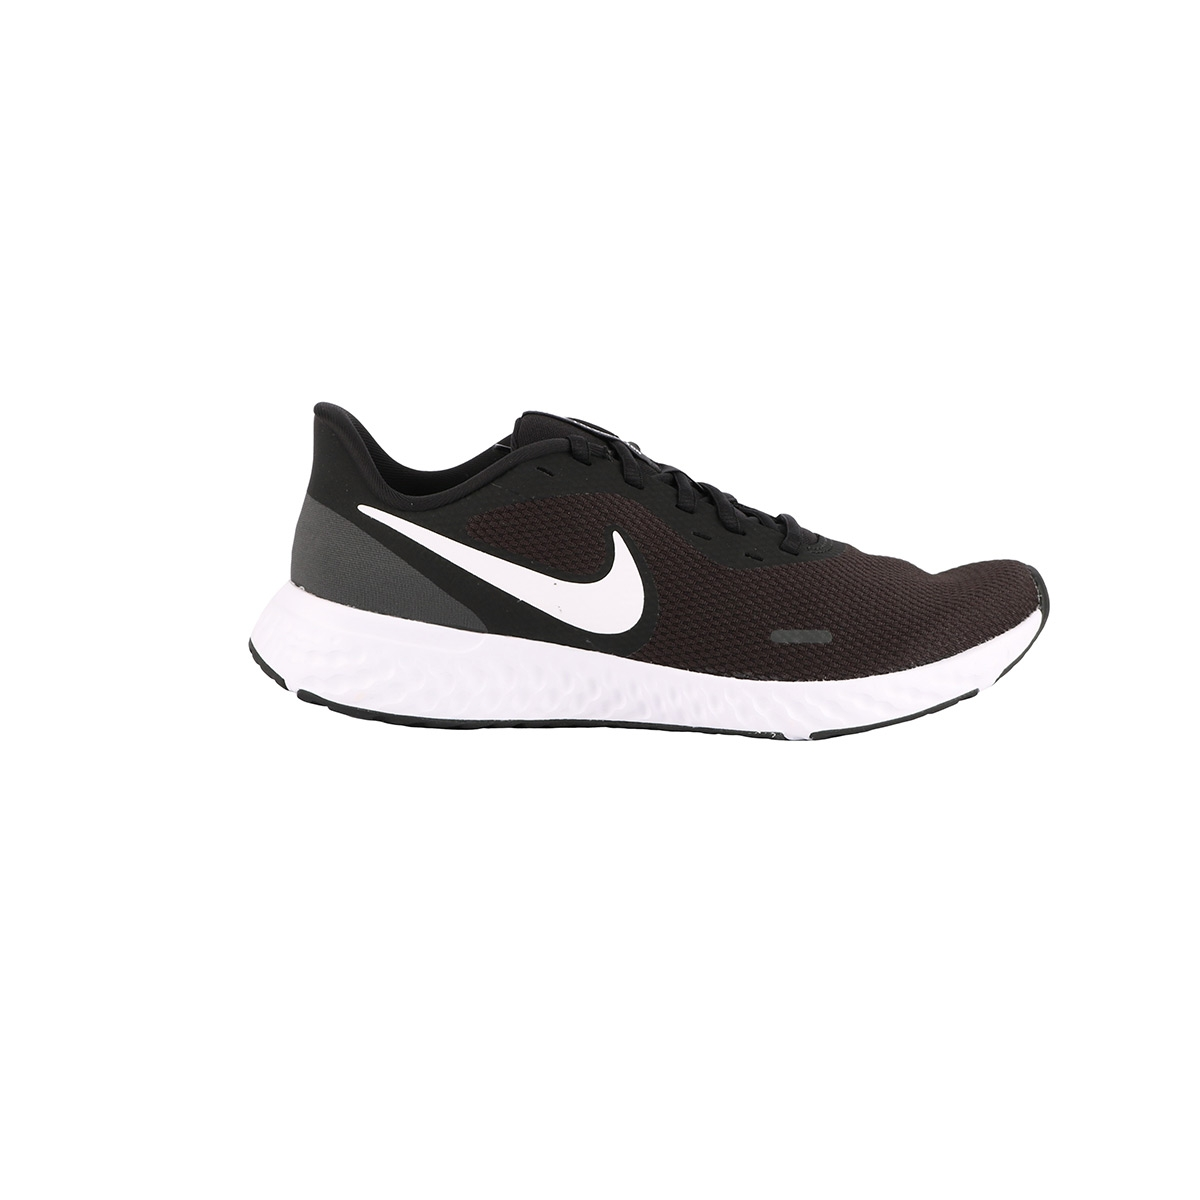 Nike Revolution 5 Black White Anthracite Negro Blanco Hombre